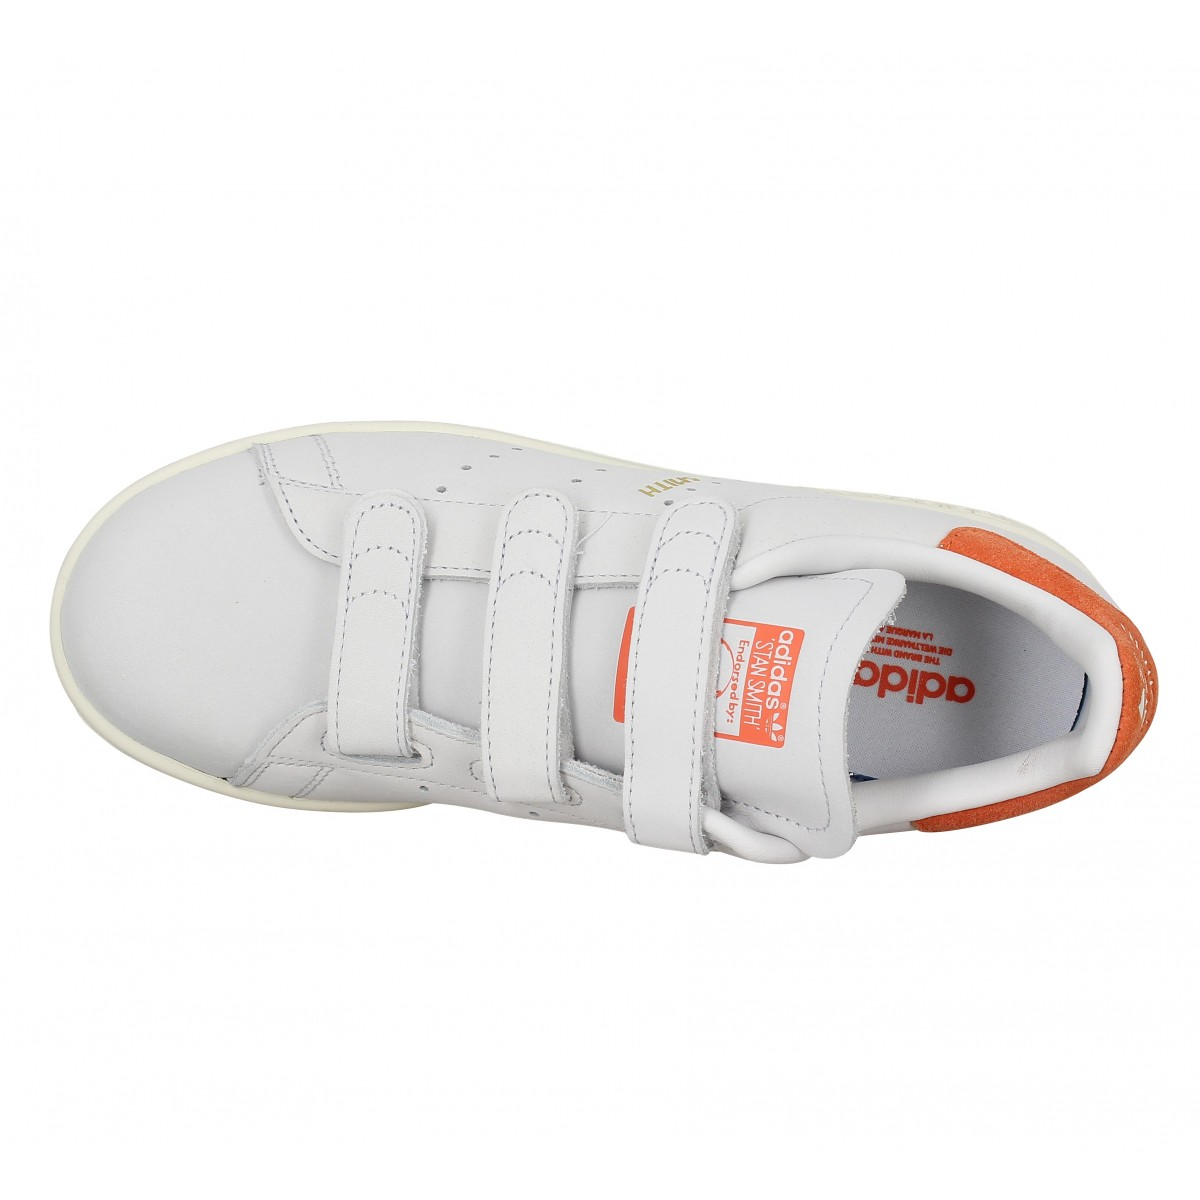 le dernier 41837 a24ce new zealand adidas stan smith femmes orange cdcfd 3e234